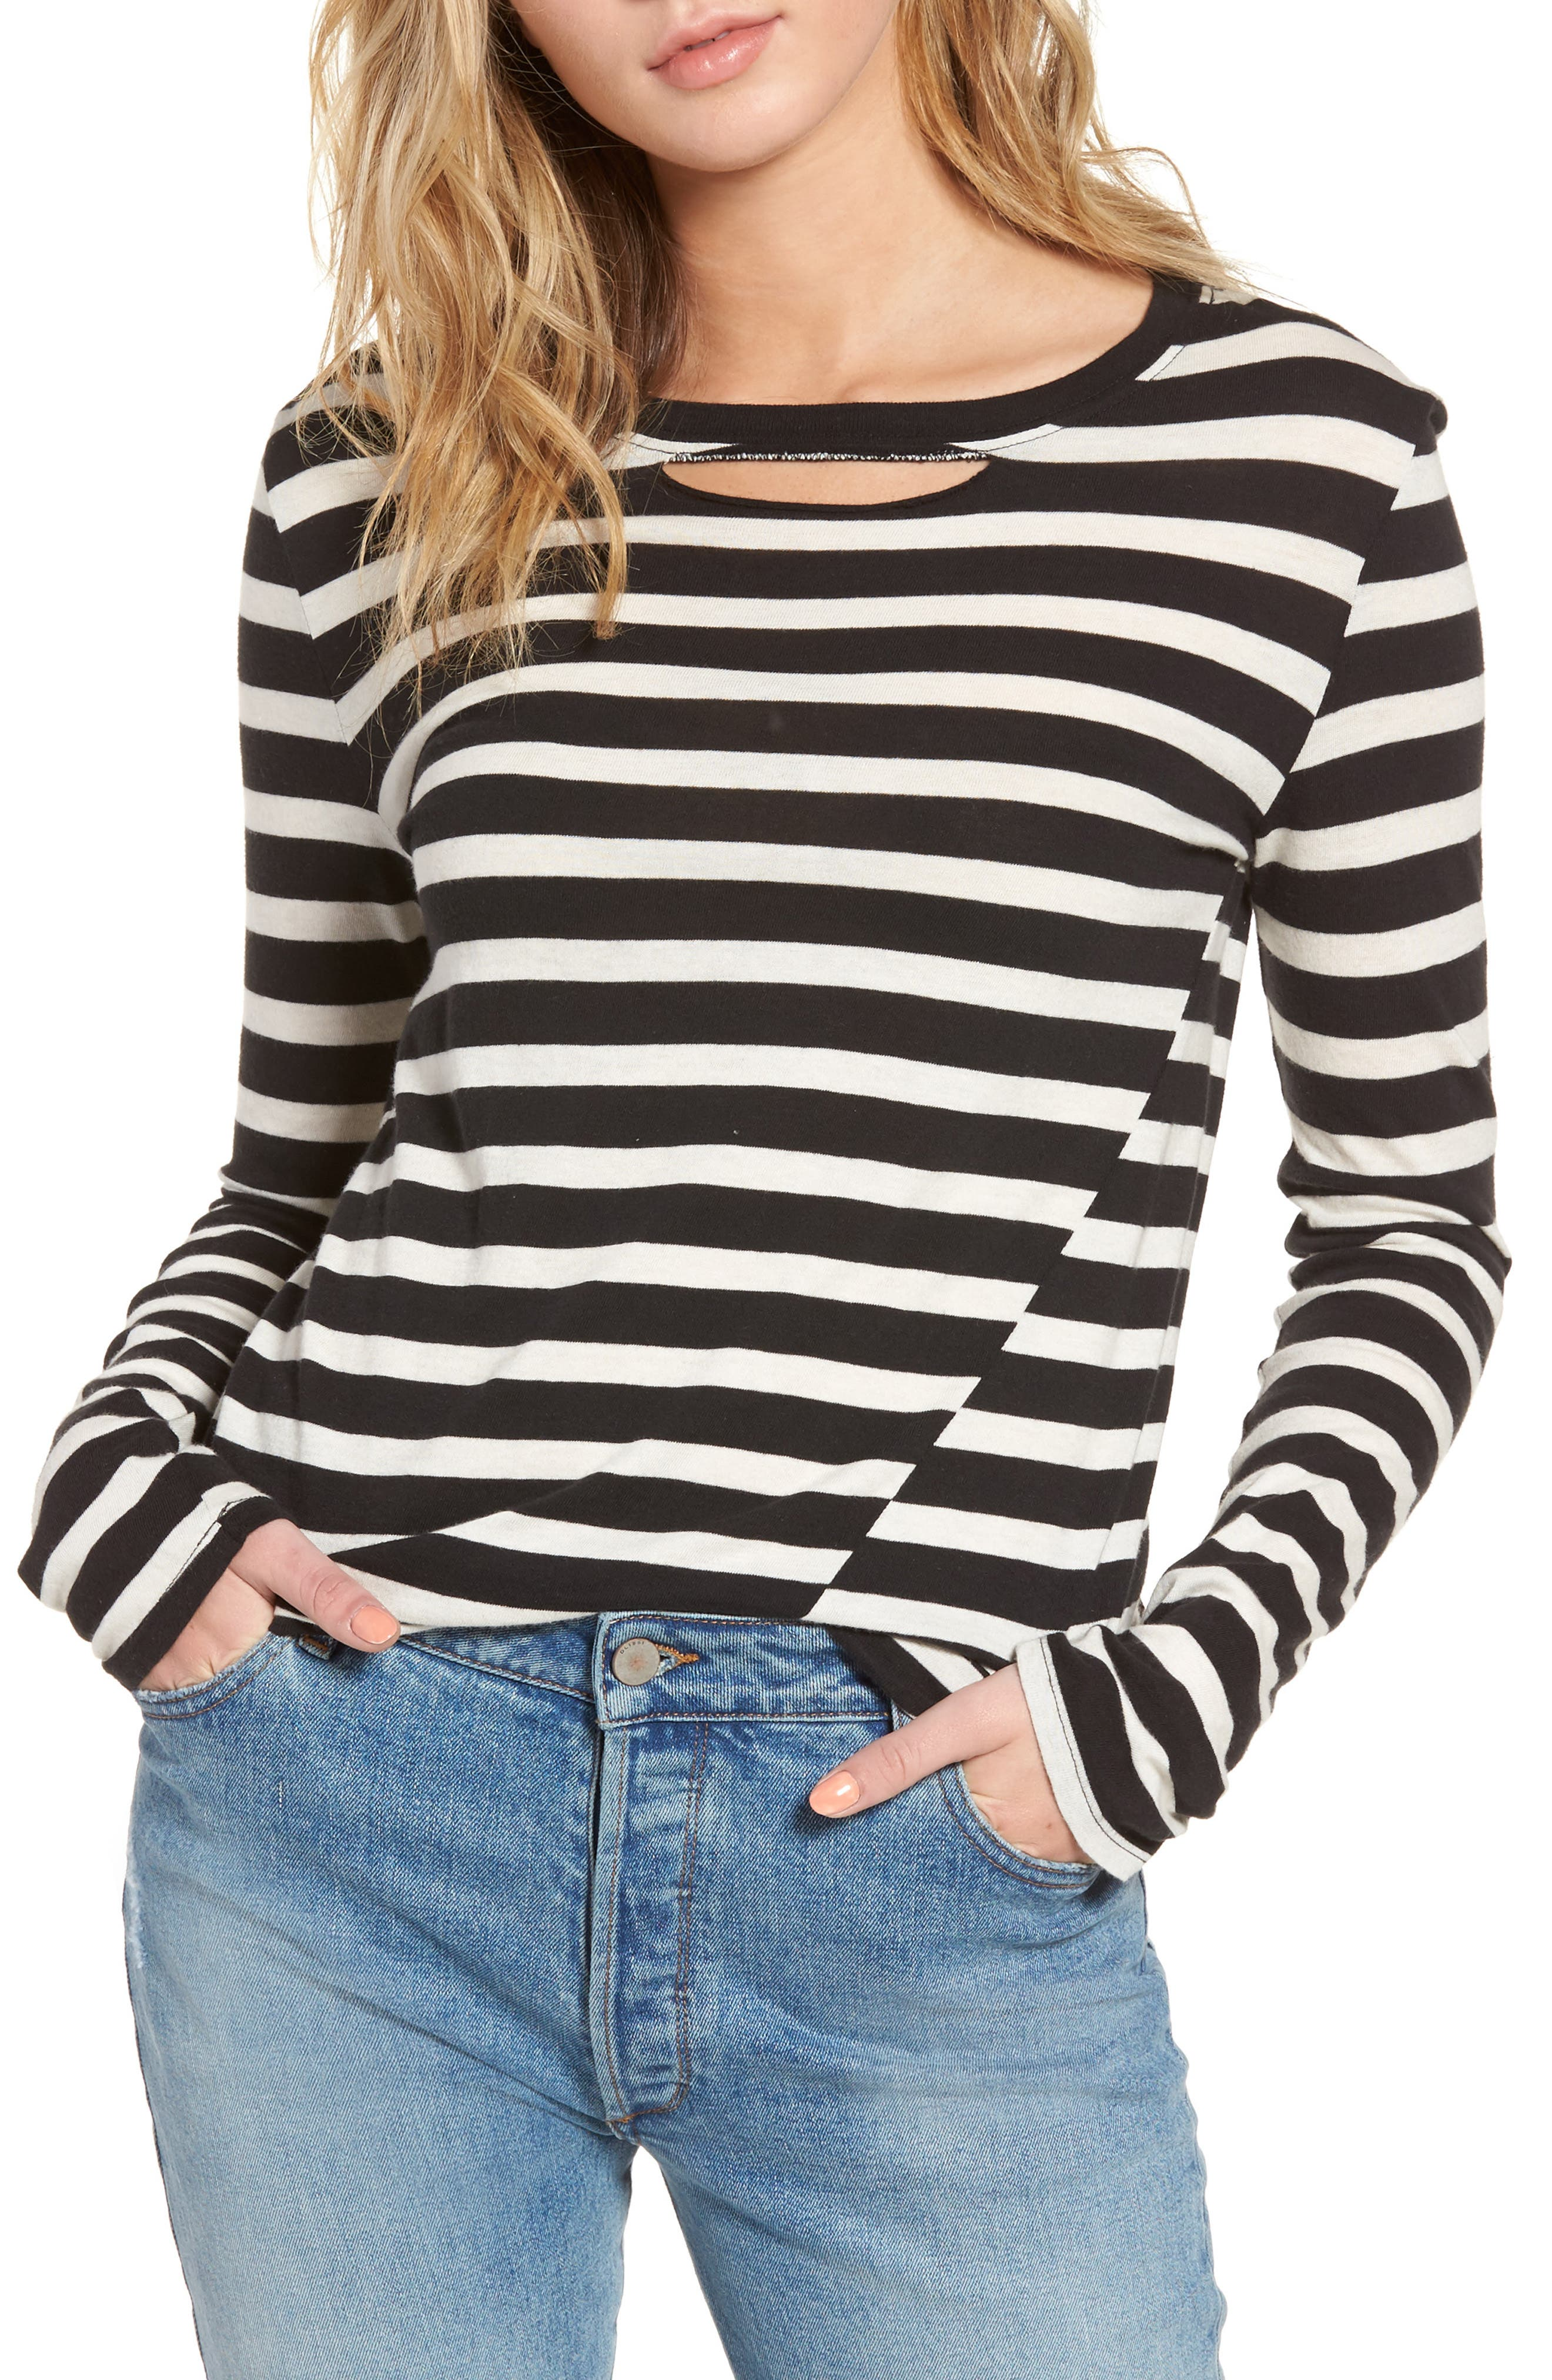 Stripe Long Sleeve Top,                         Main,                         color, Black/ White